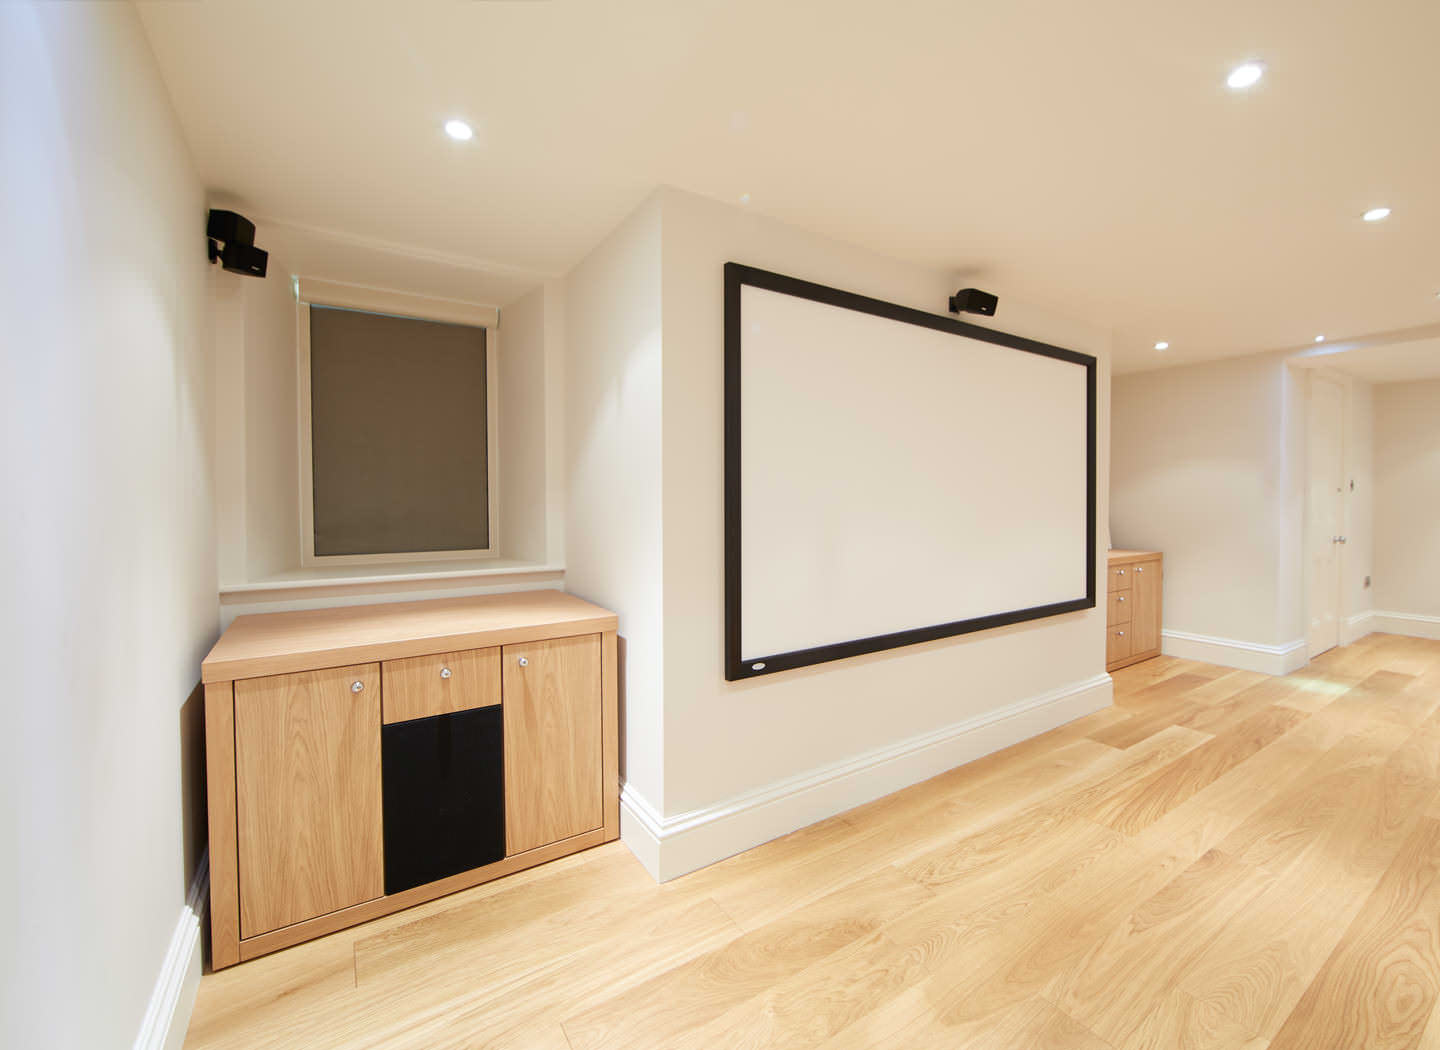 Case study showing speaker cabinet in home cinema basement conversion